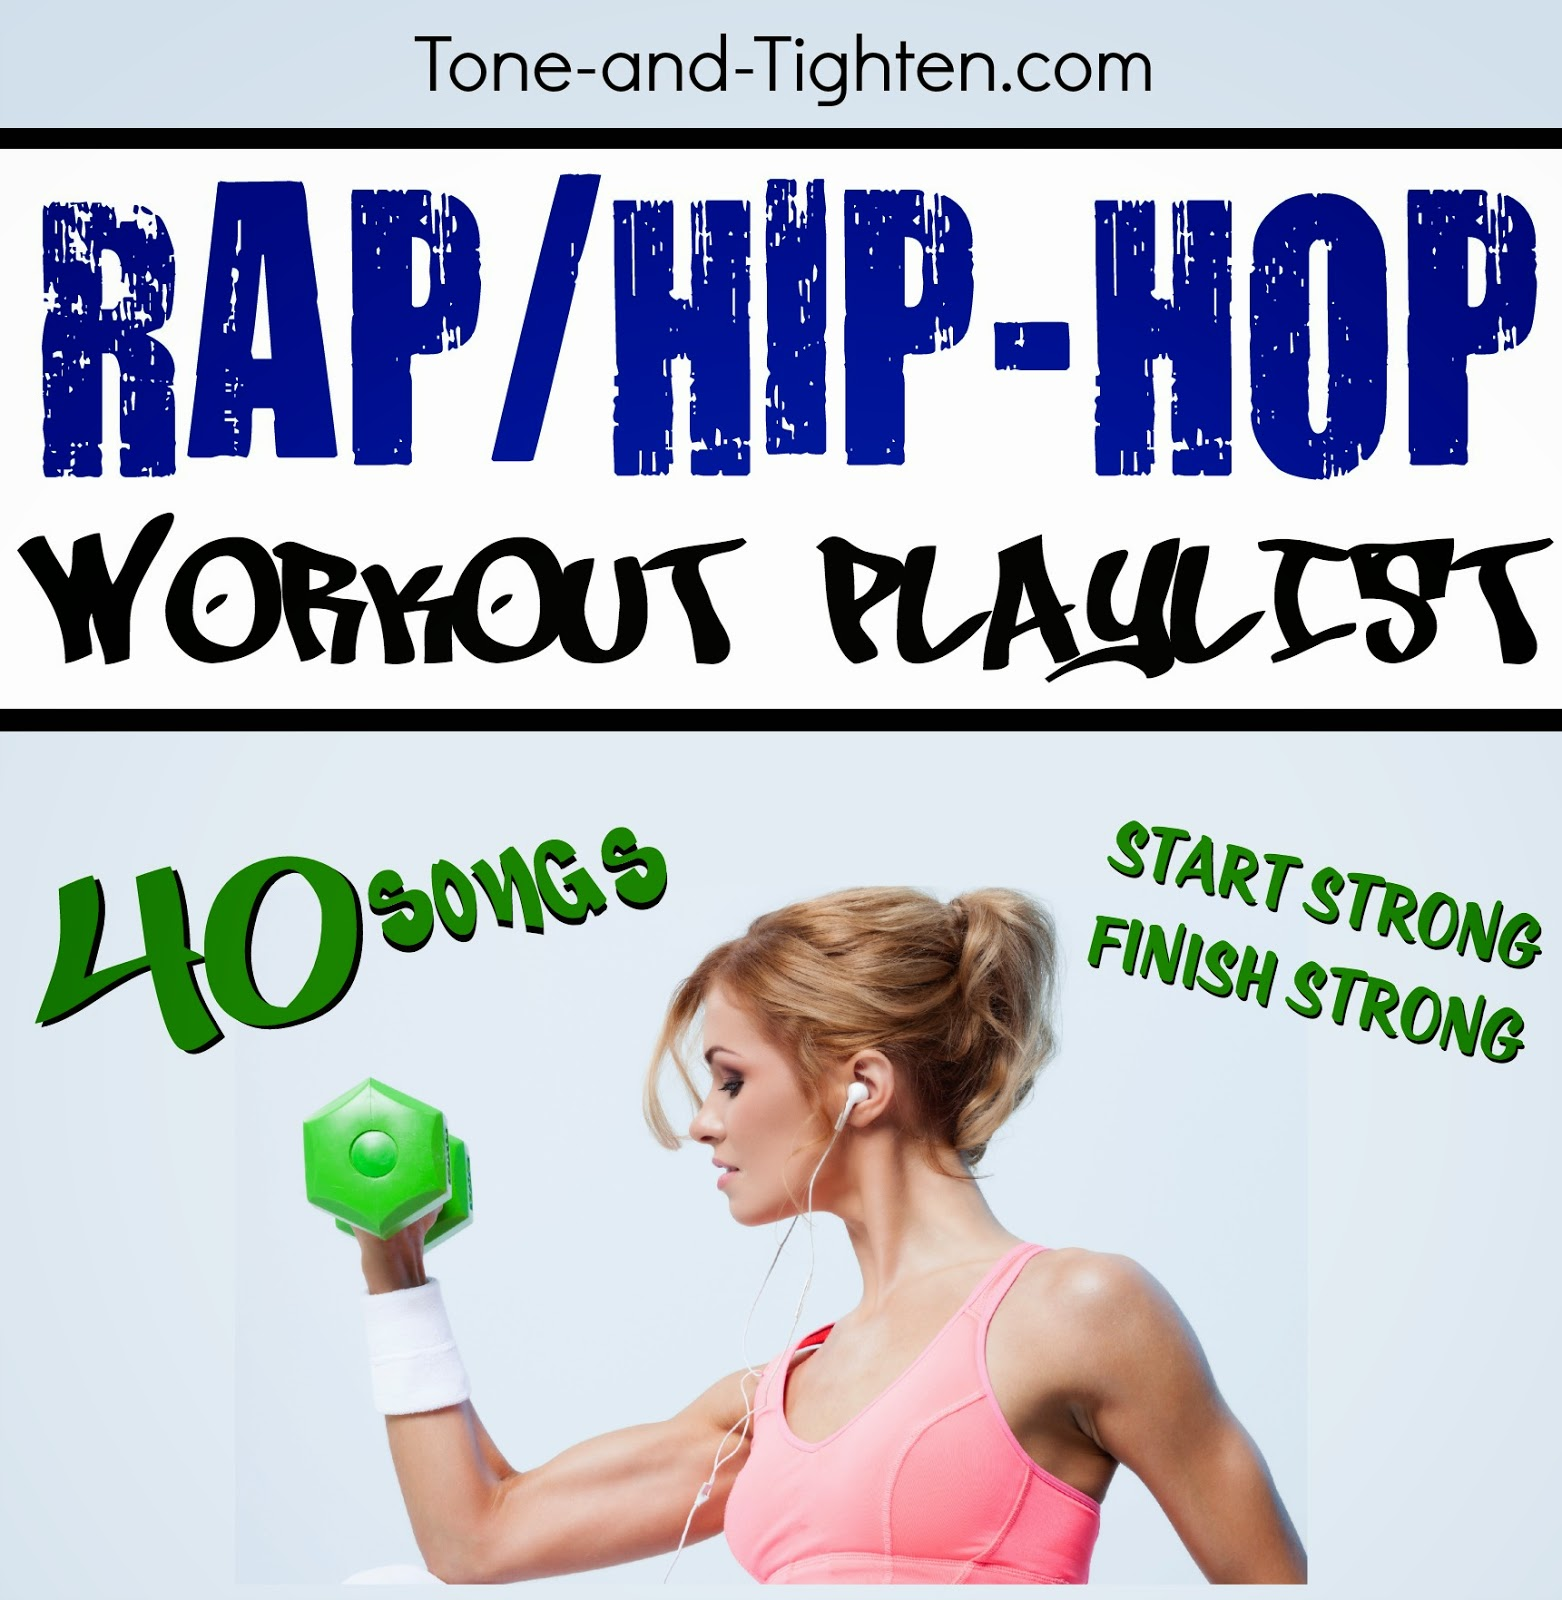 best rap hip hop workout songs tracks tunes playlist exercise gym tone and tighten